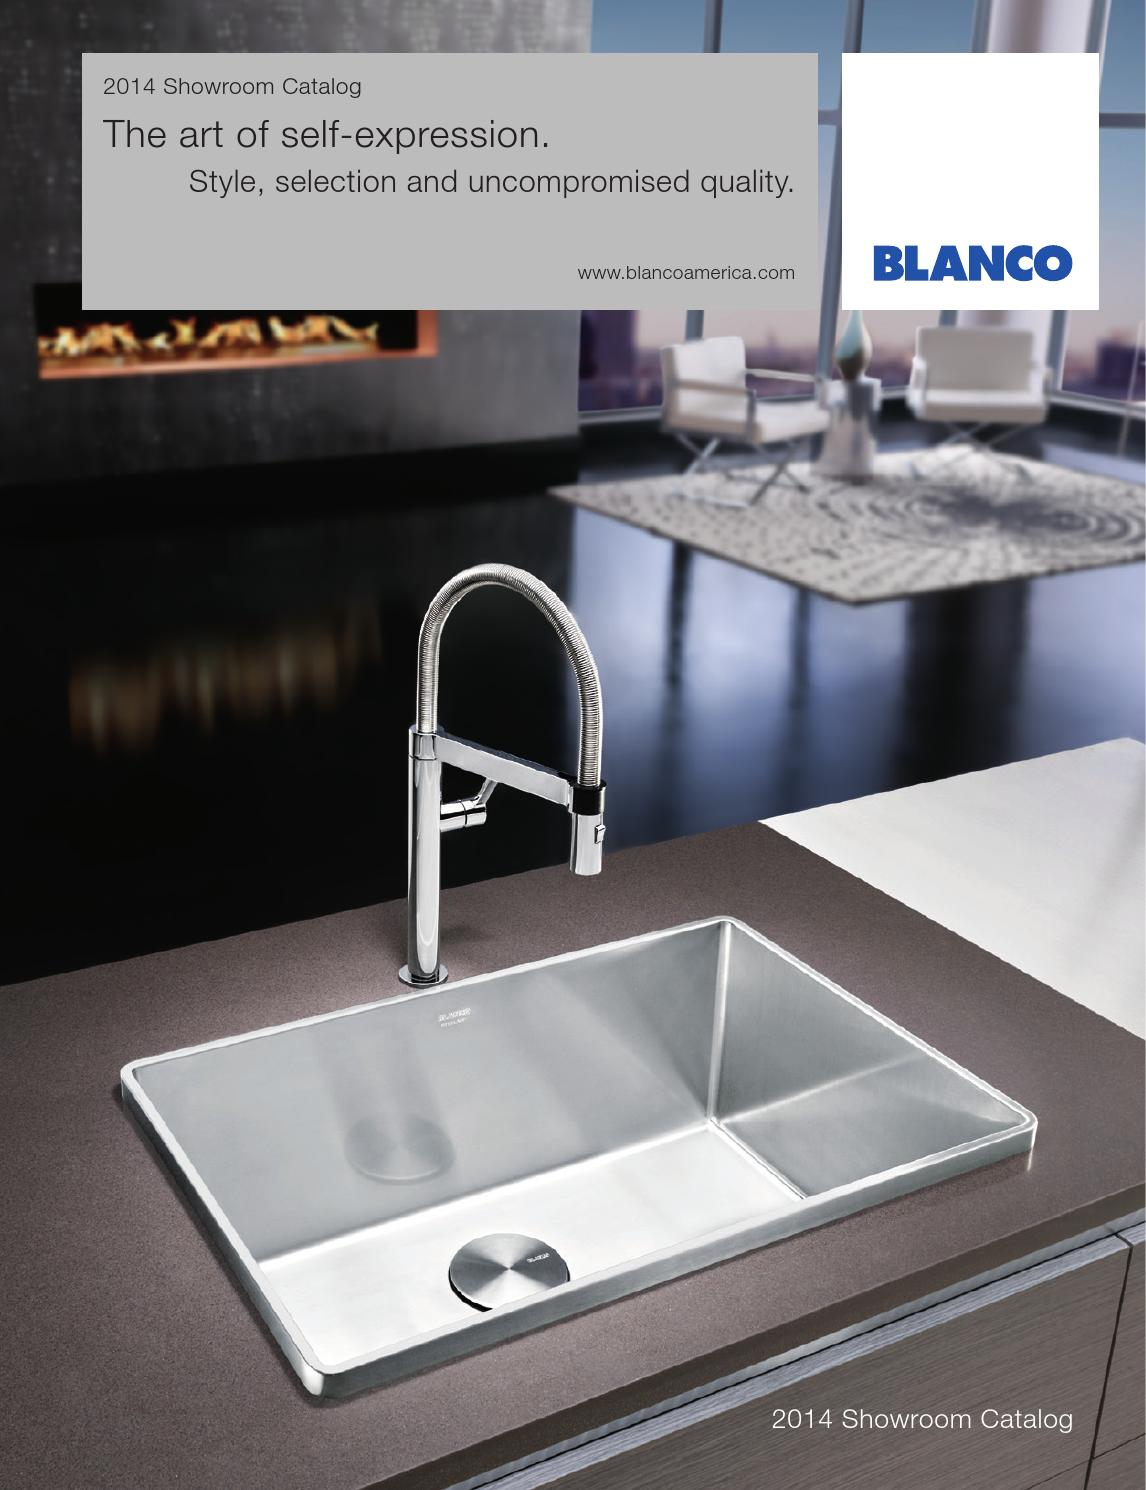 Blanco 2014 showroom catalog by blanco issuu for Blancoamerica com kitchen sinks